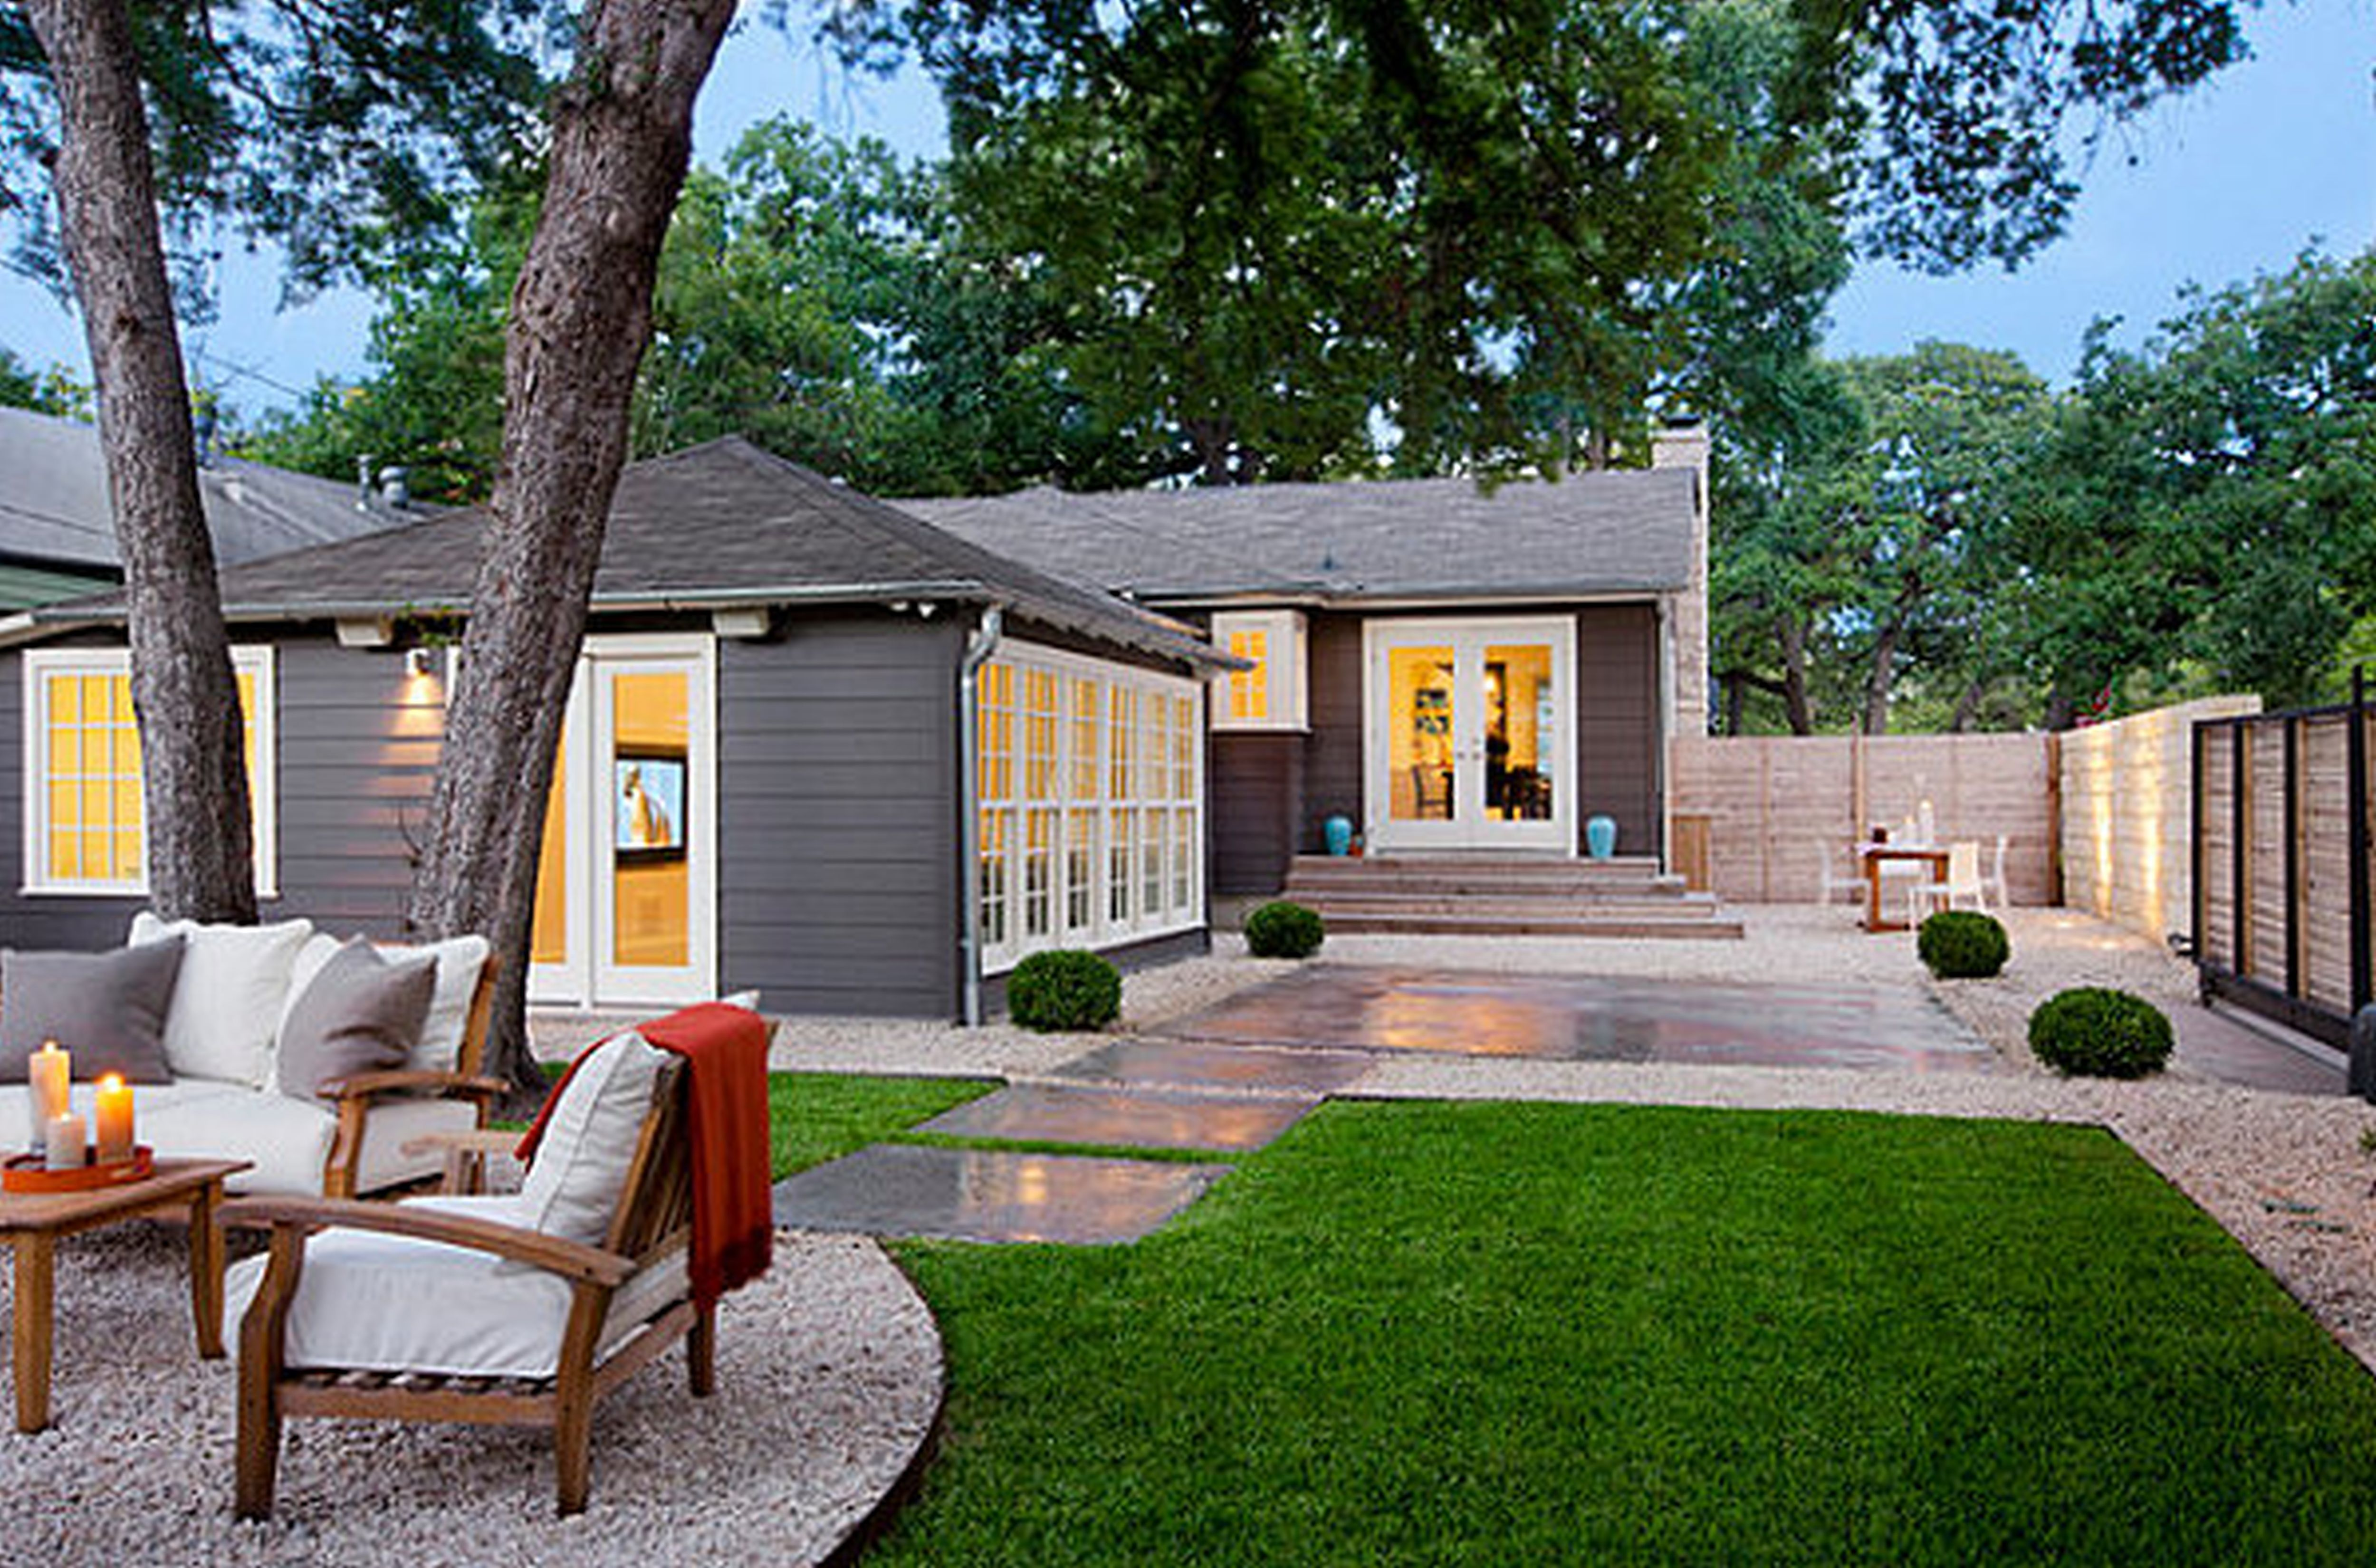 5 Reasons Why Using of Stones in Landscaping is a Good Choice